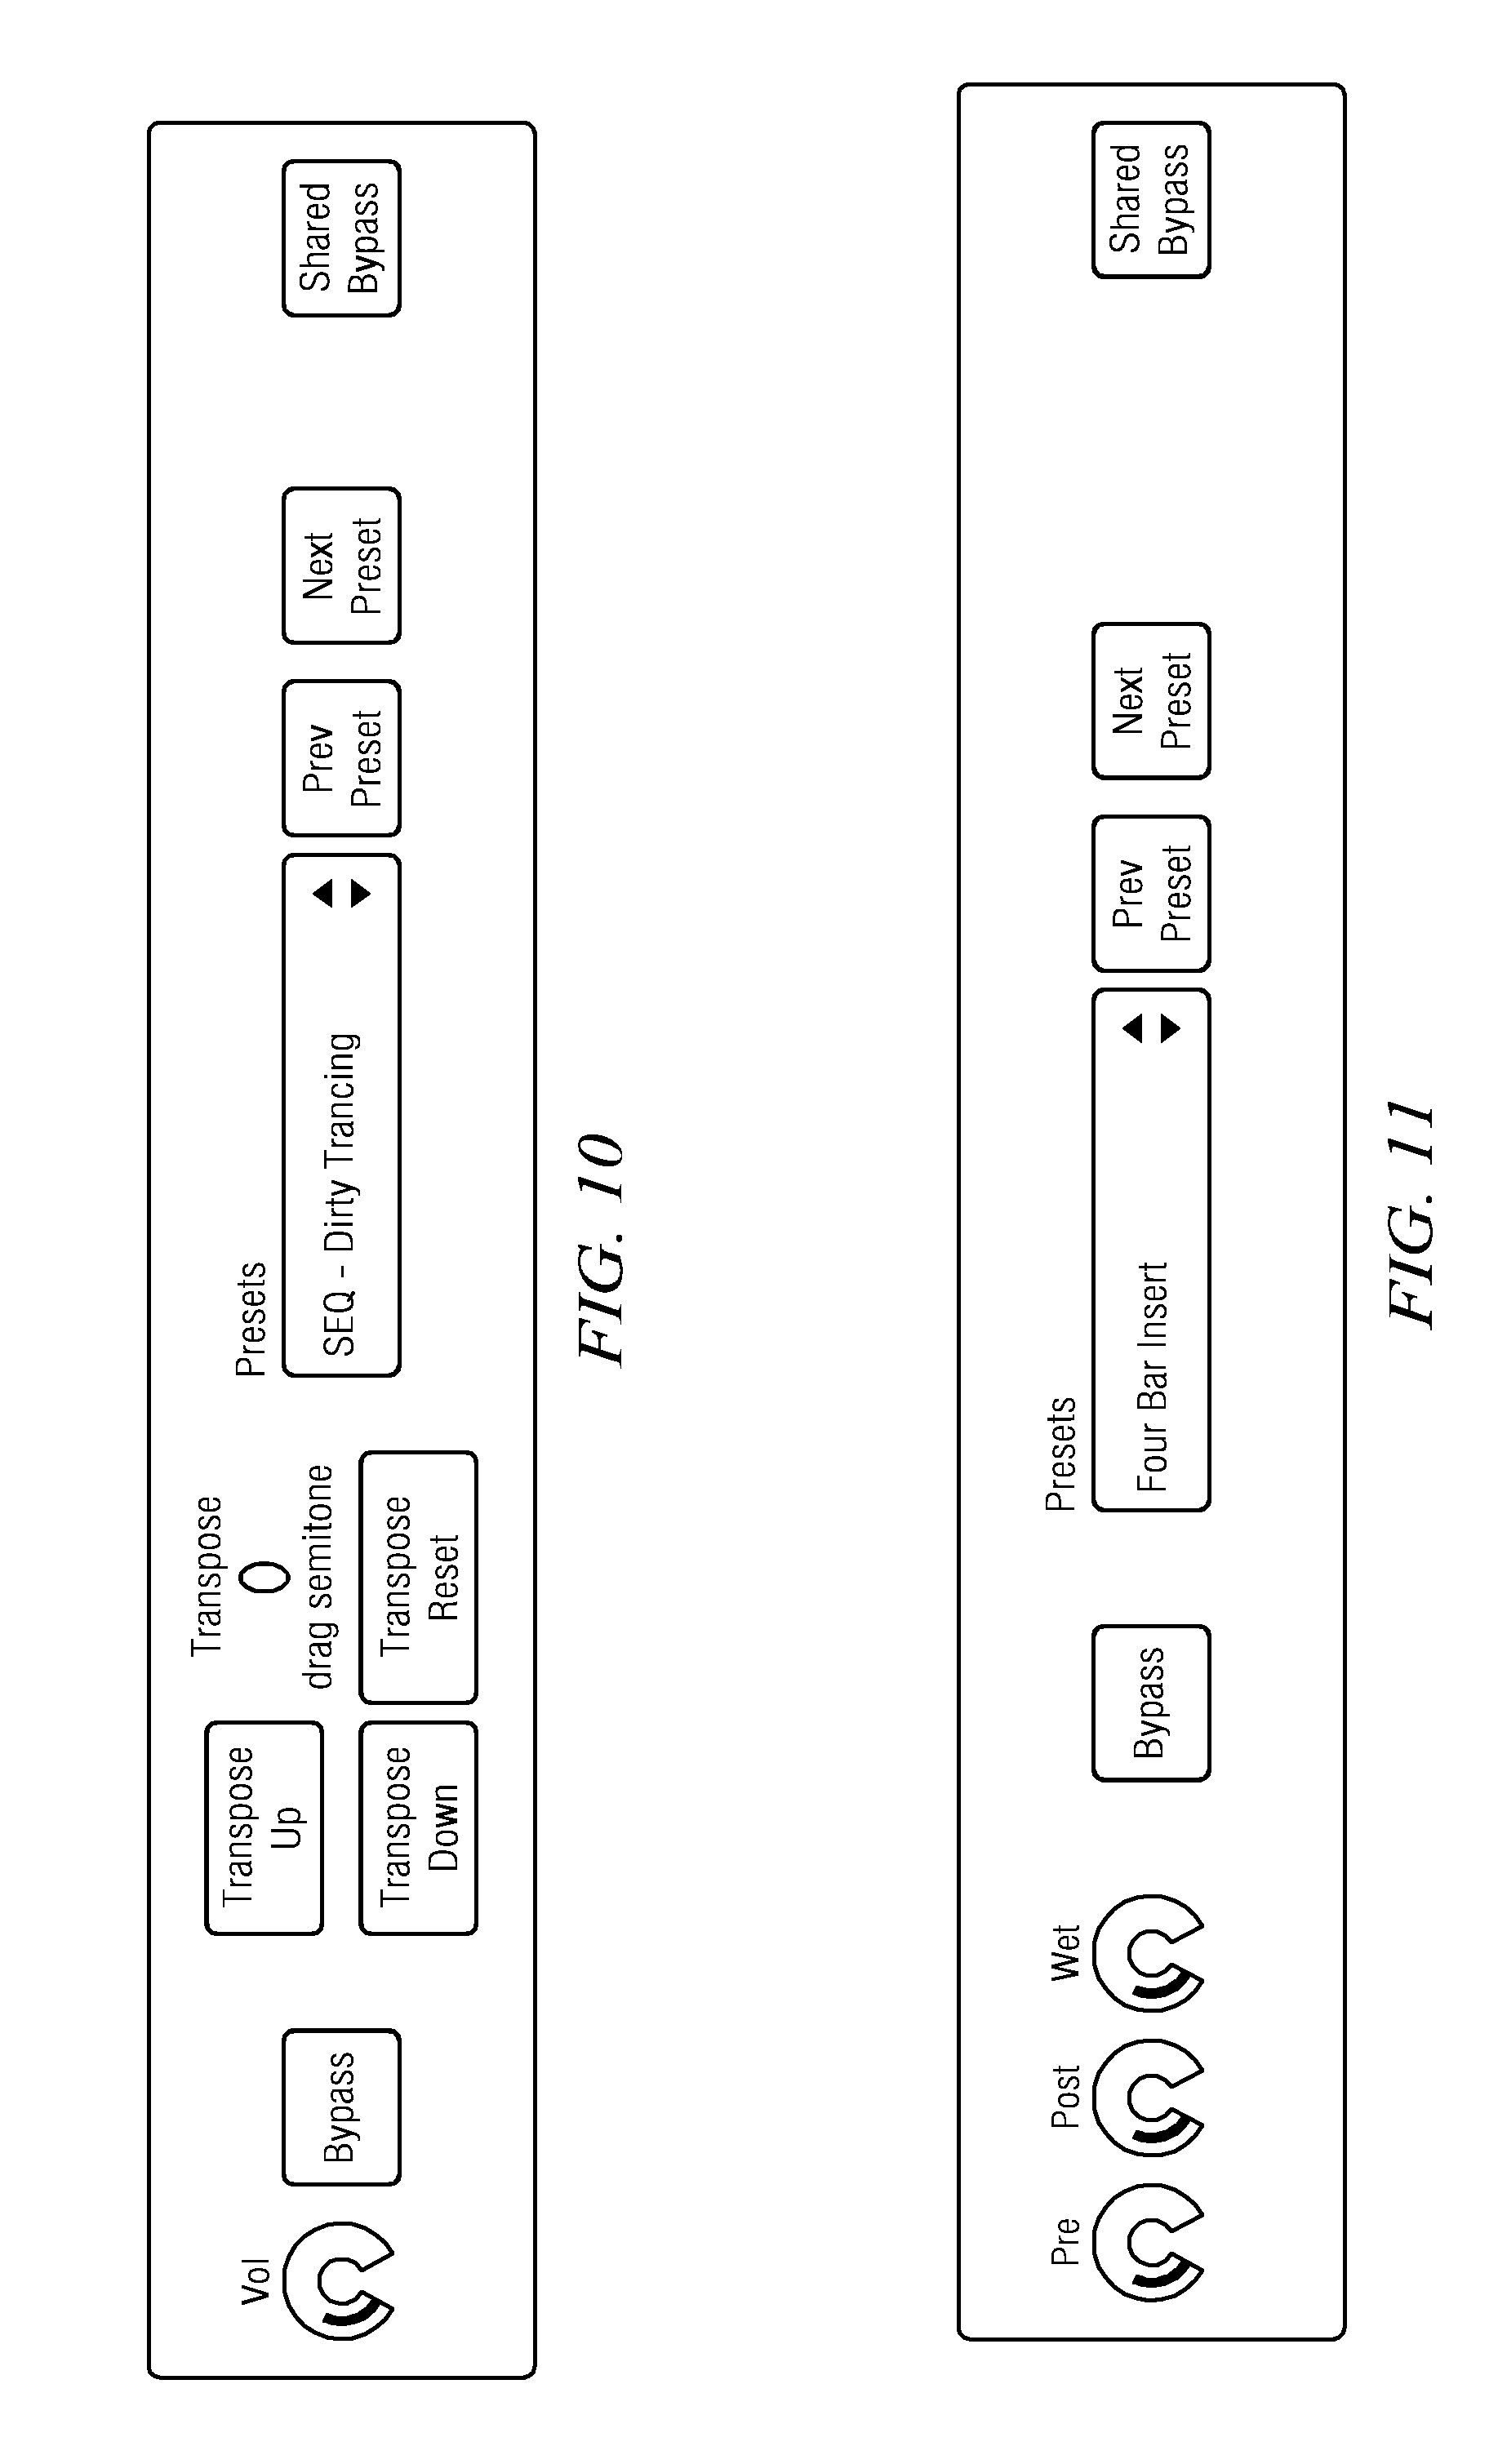 patent us universal music production system with